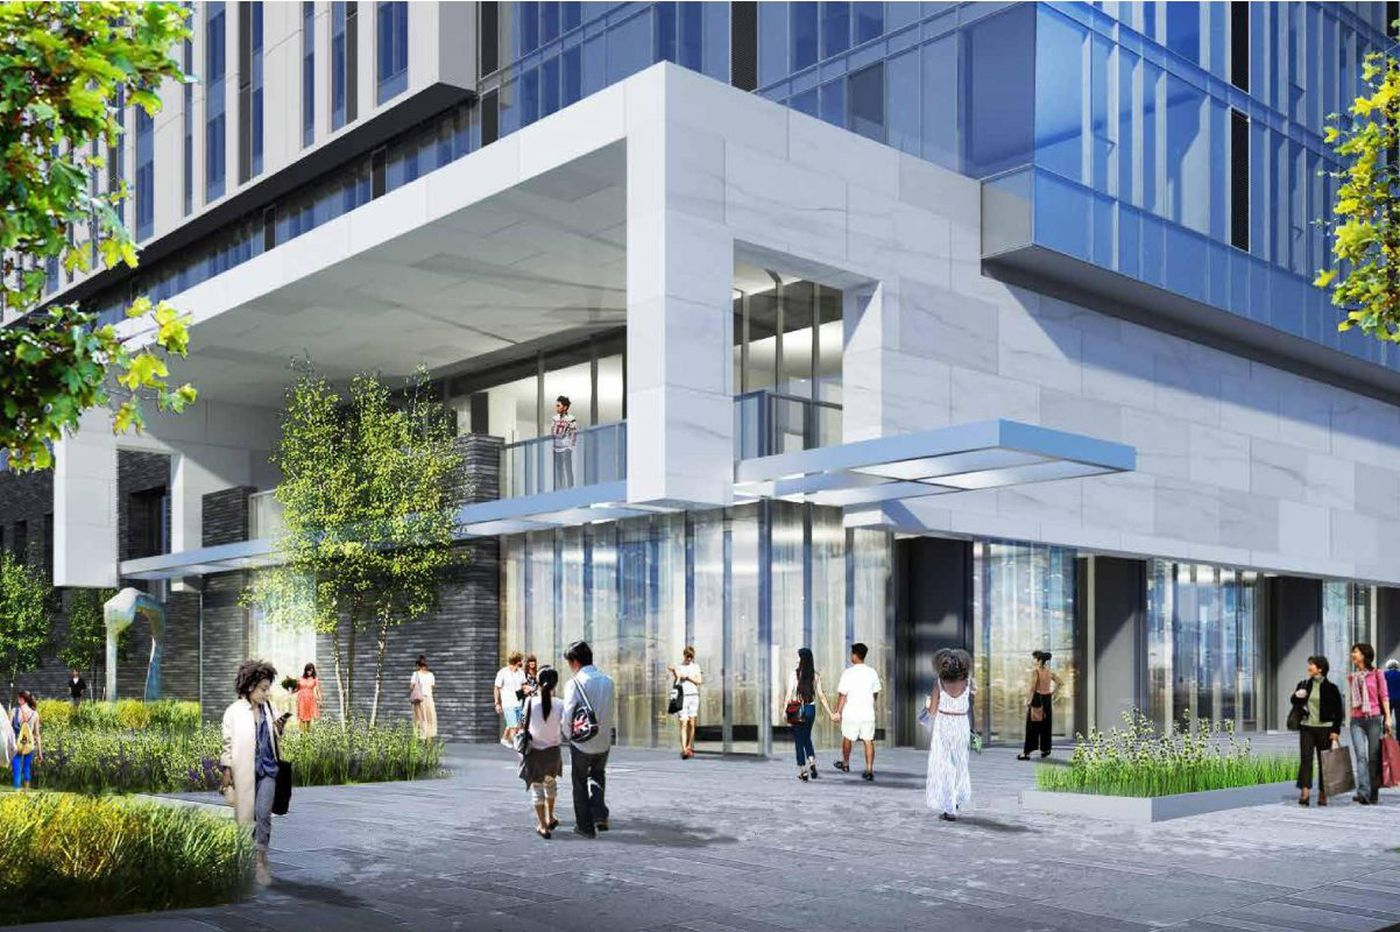 University City Newman Center slated for replacement with 30-story apartment tower